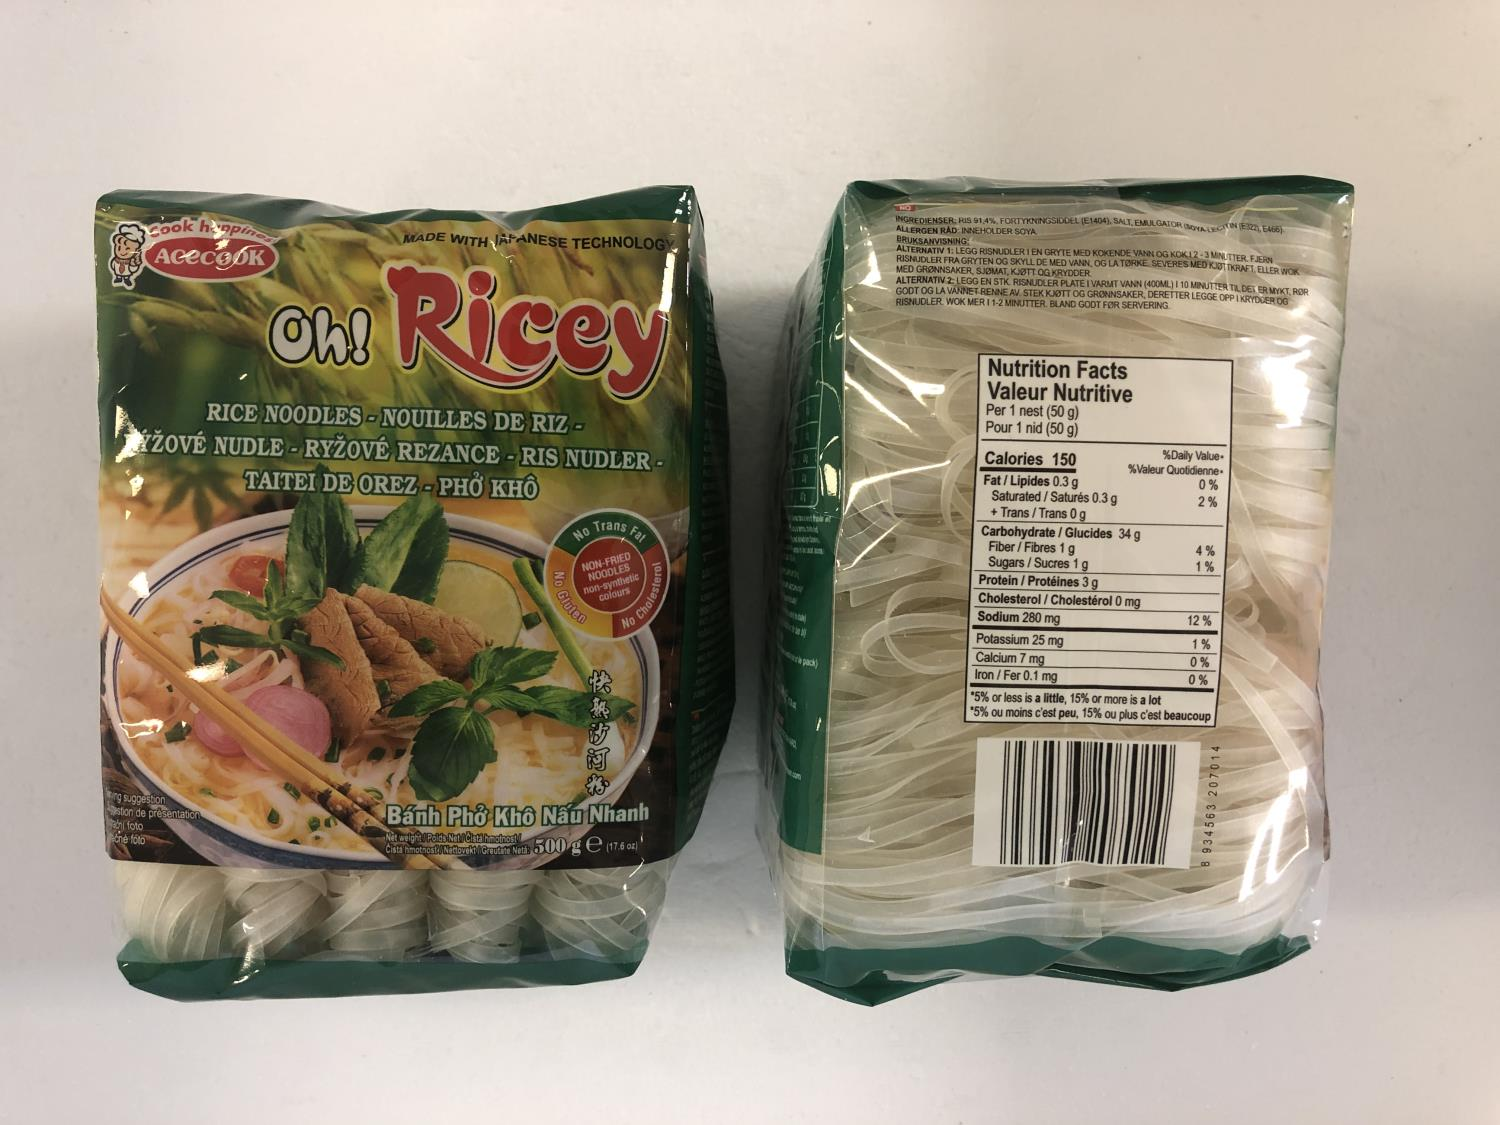 'ACECOOK Oh! Ricey Rice Noodle 500gr å